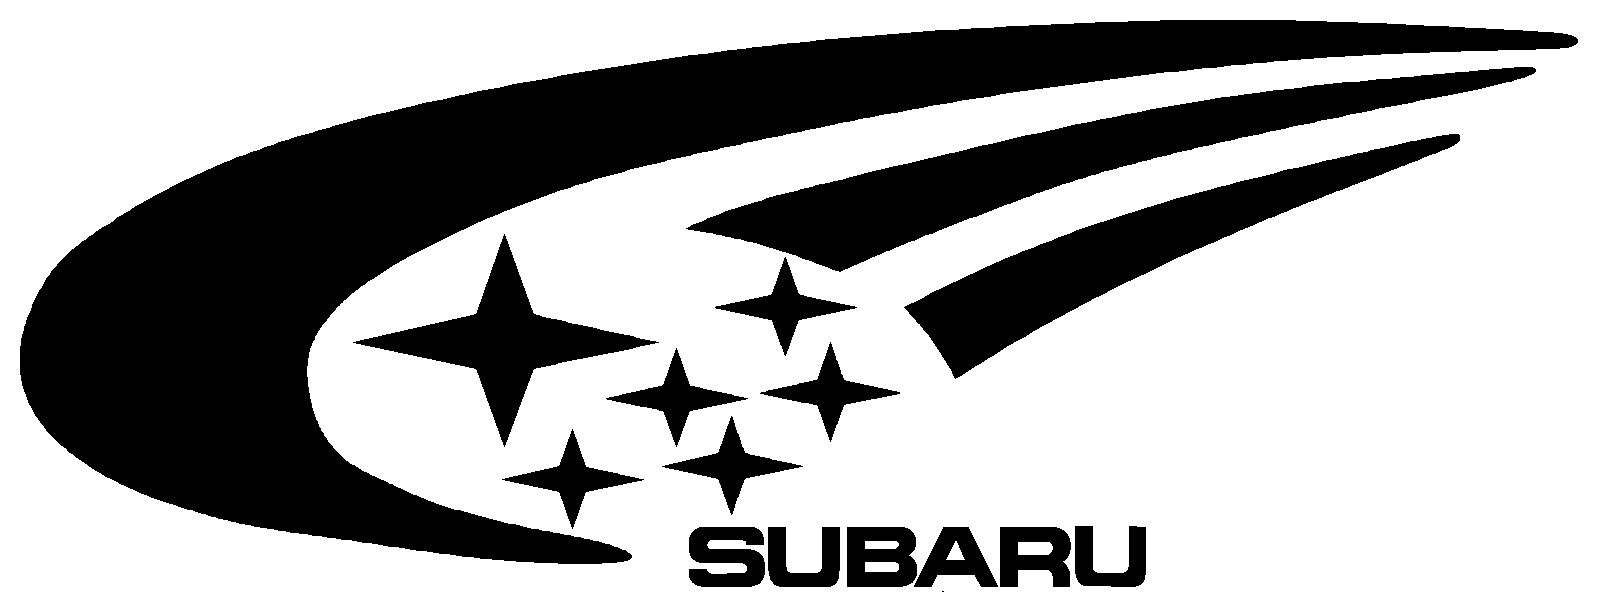 the word  u0026quot subaru u0026quot  is the japanese wored used for the cluster of stars  u0026quot pleiades u0026quot  as seen in the